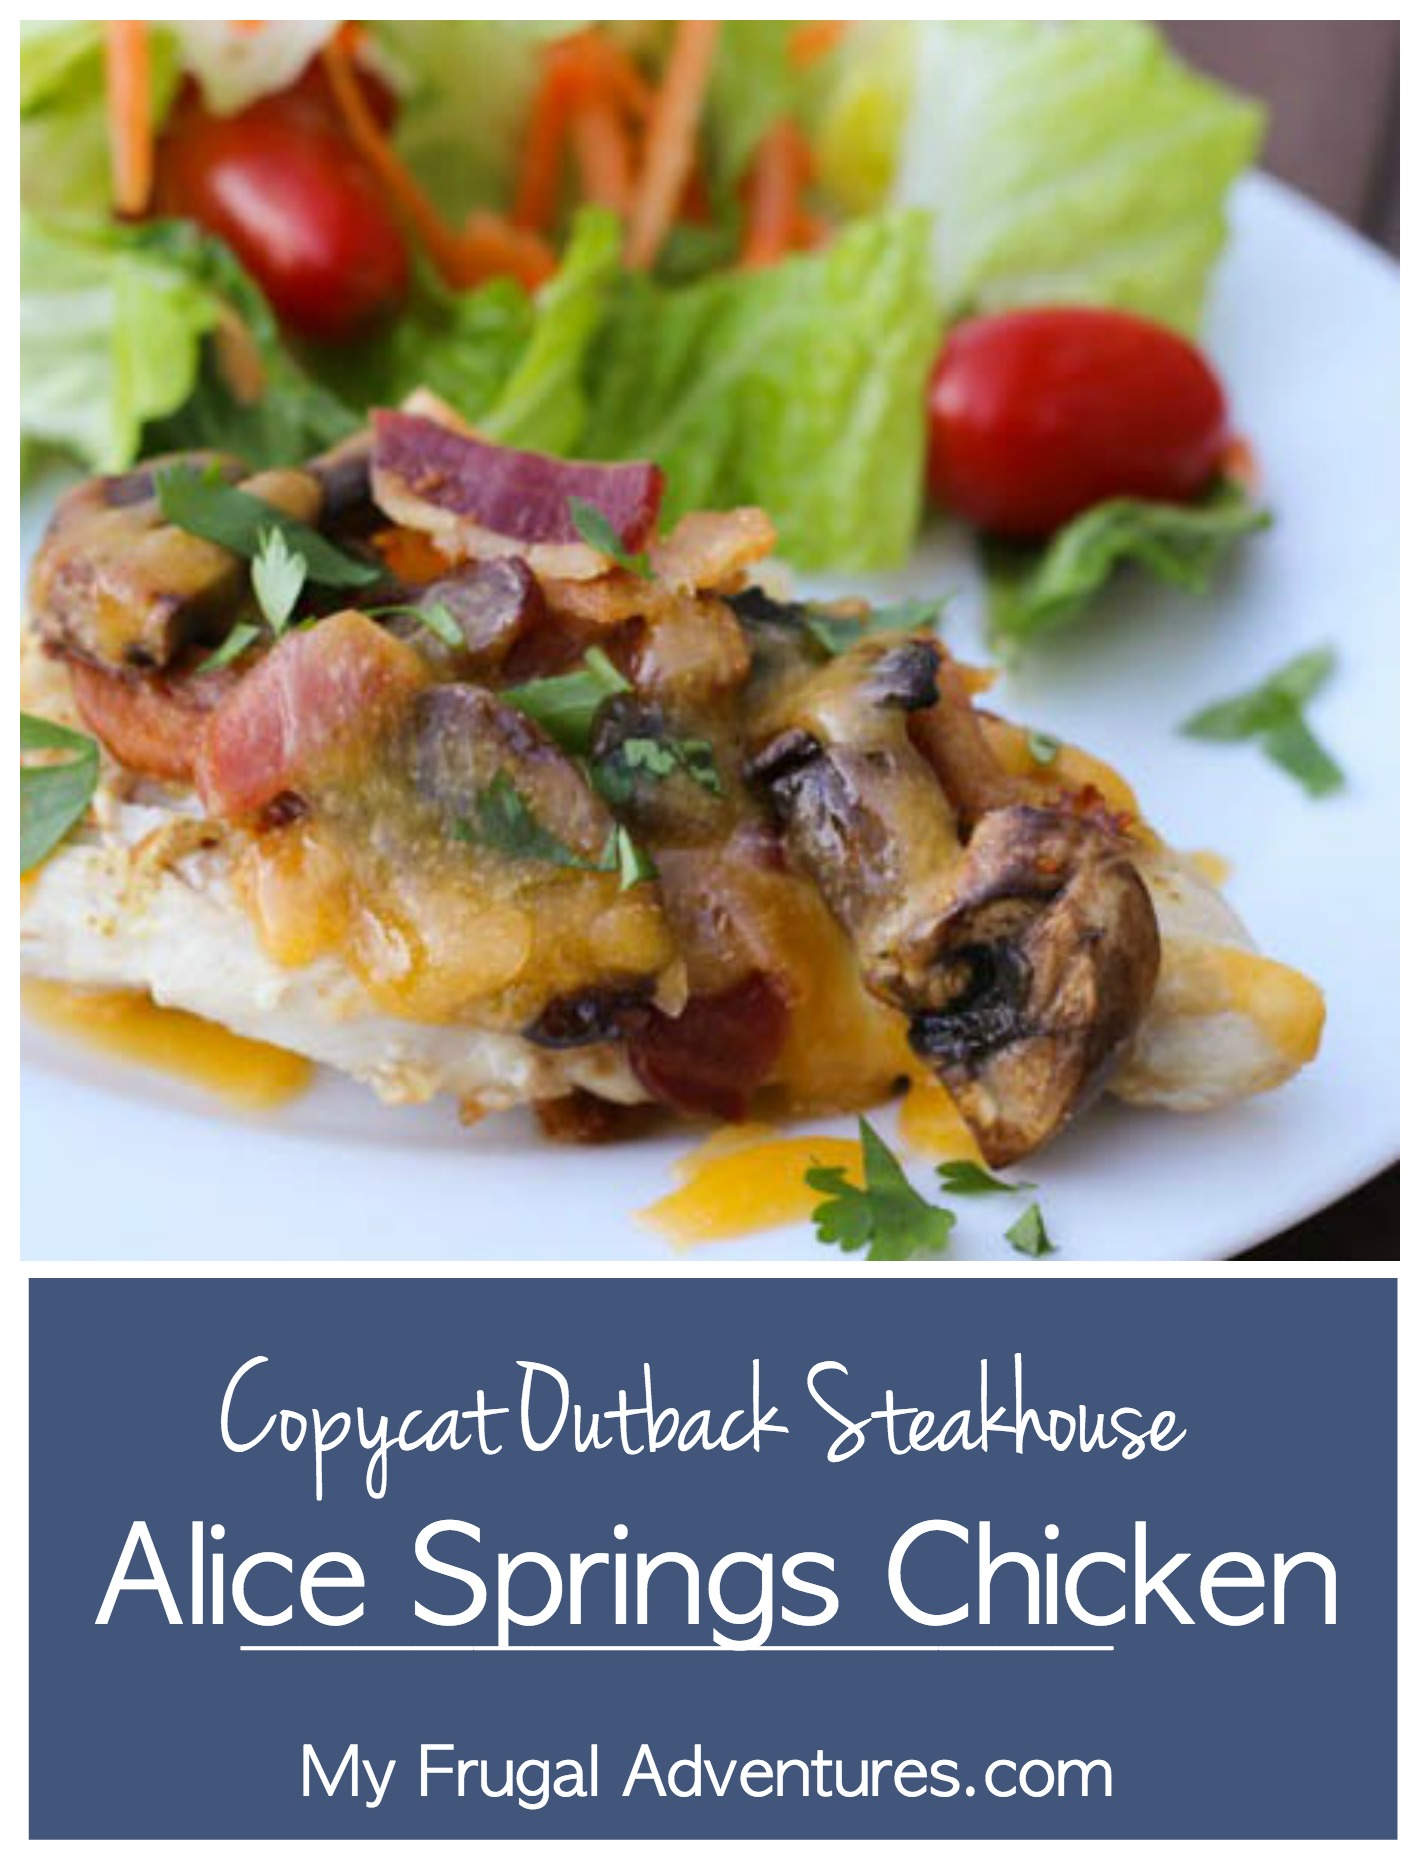 Copycat Outback Steakhouse Alice Springs Chicken Recipe